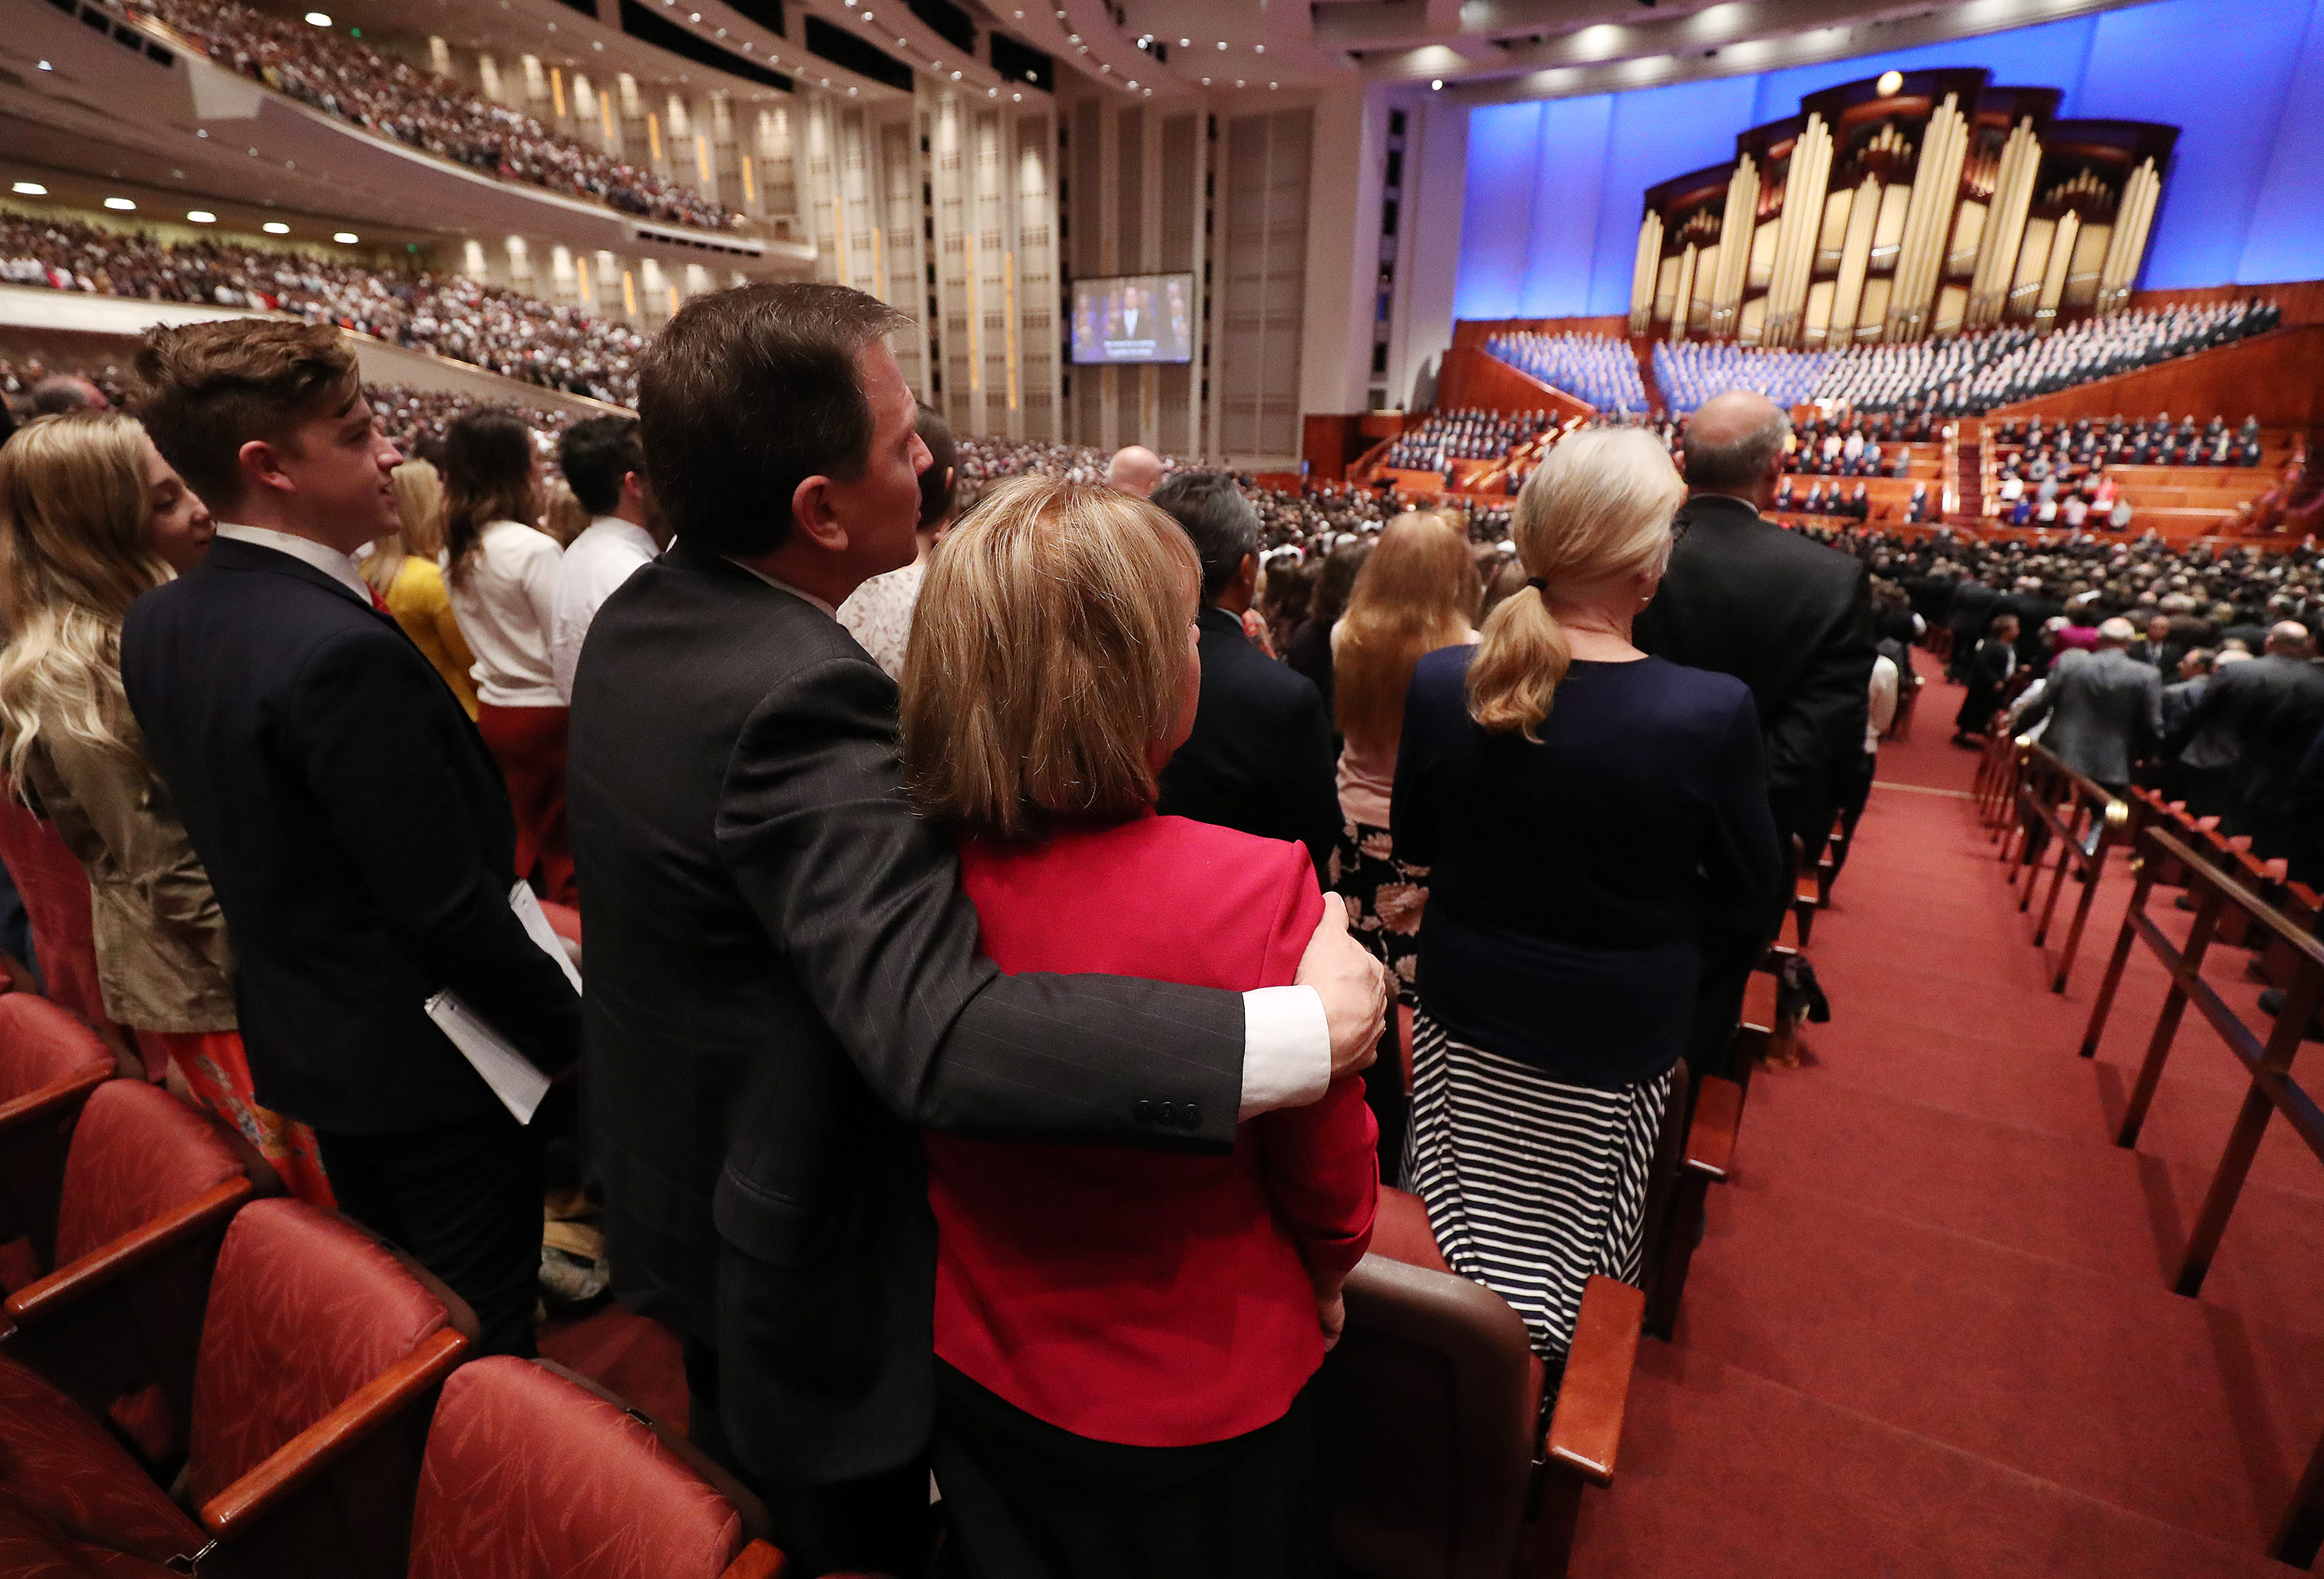 Attendees sing a congregational hymn during to the 189th Annual General Conference of The Church of Jesus Christ of Latter-day Saints in Salt Lake City on Saturday, April 6, 2019.